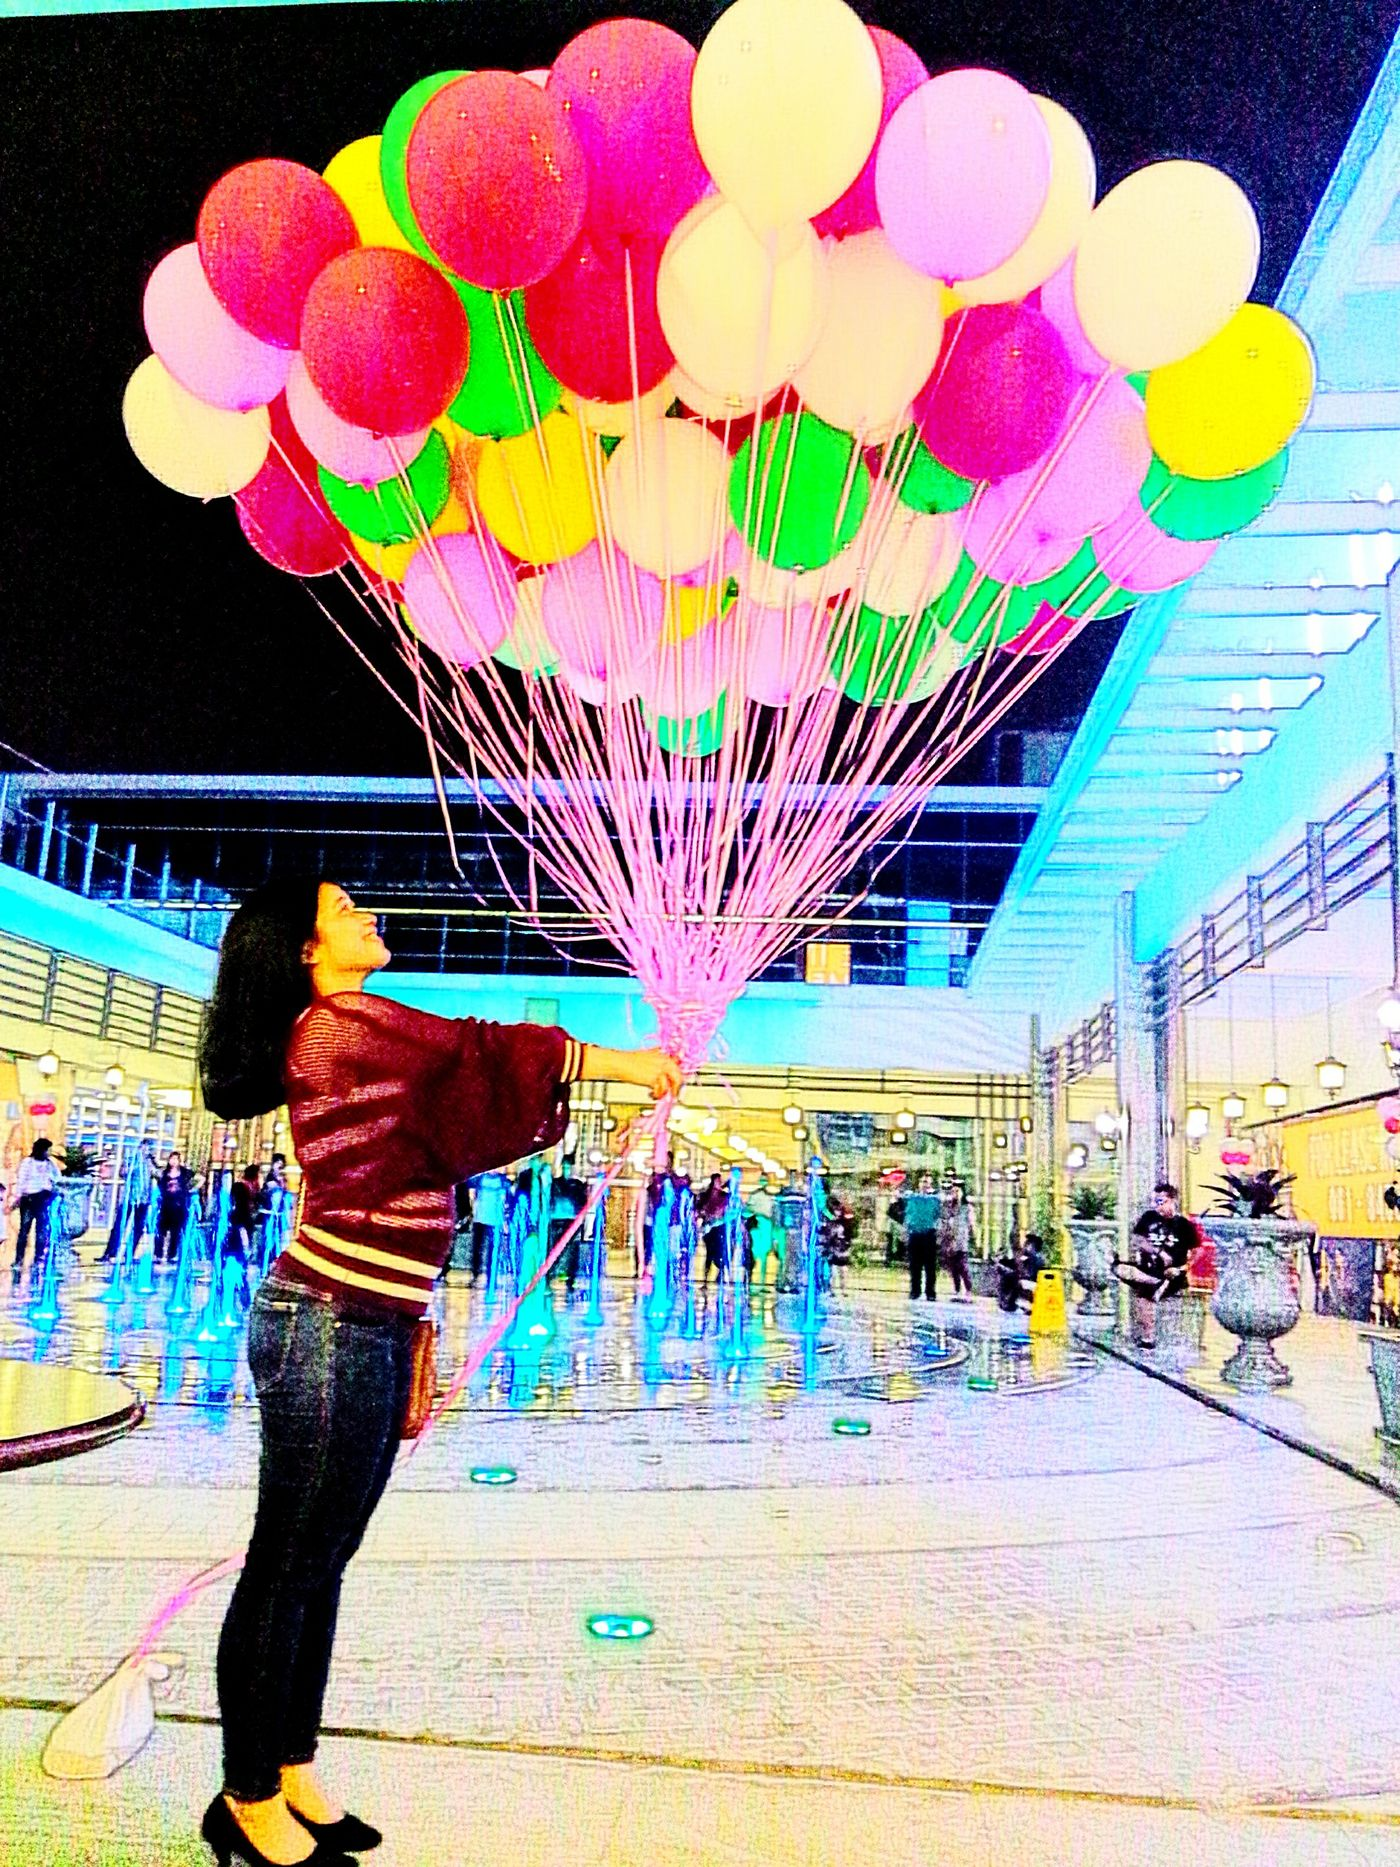 Rooftop Of A Shopping Center Colourful Balloons Colourful Fountains Behind I Love Balloons Anyway Medan North Sumatra - Indonesia